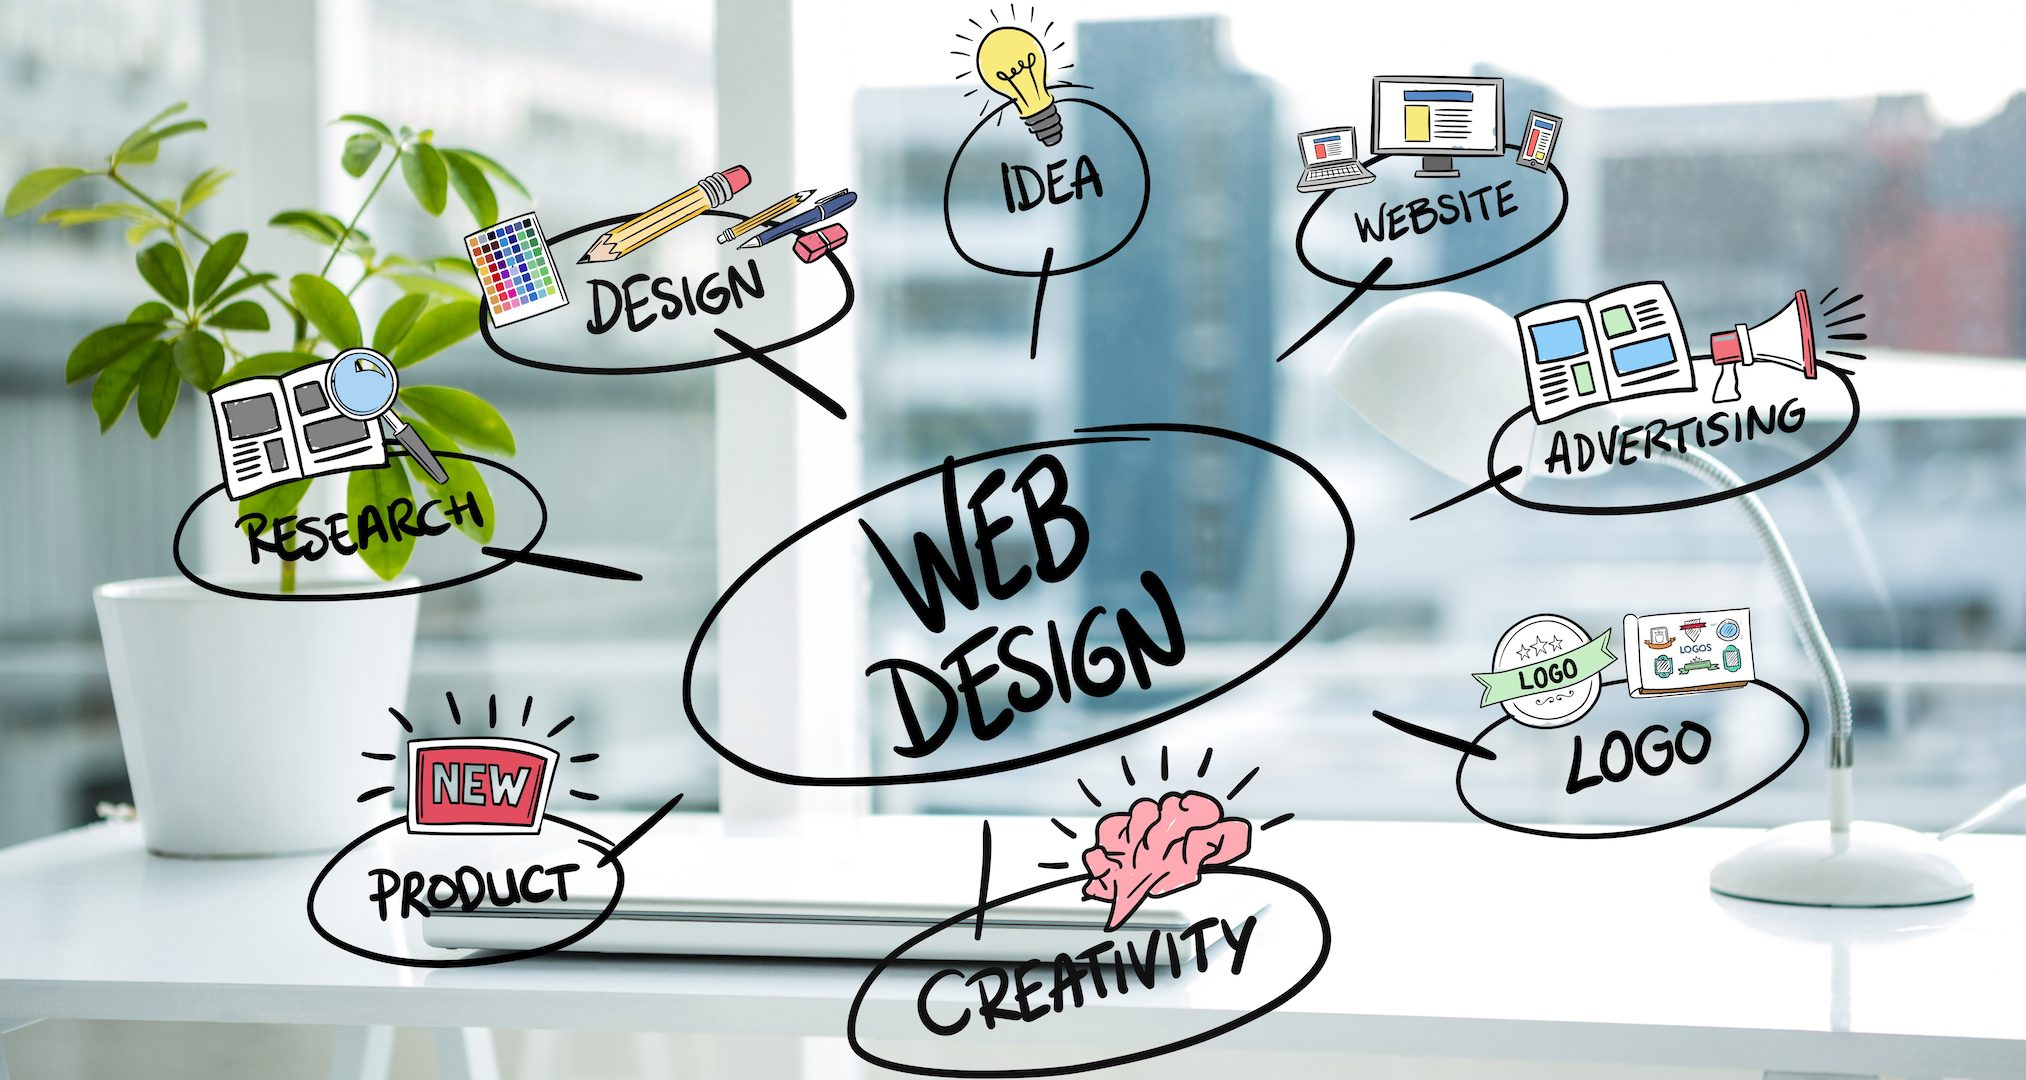 web design brainstorming cloud with office background